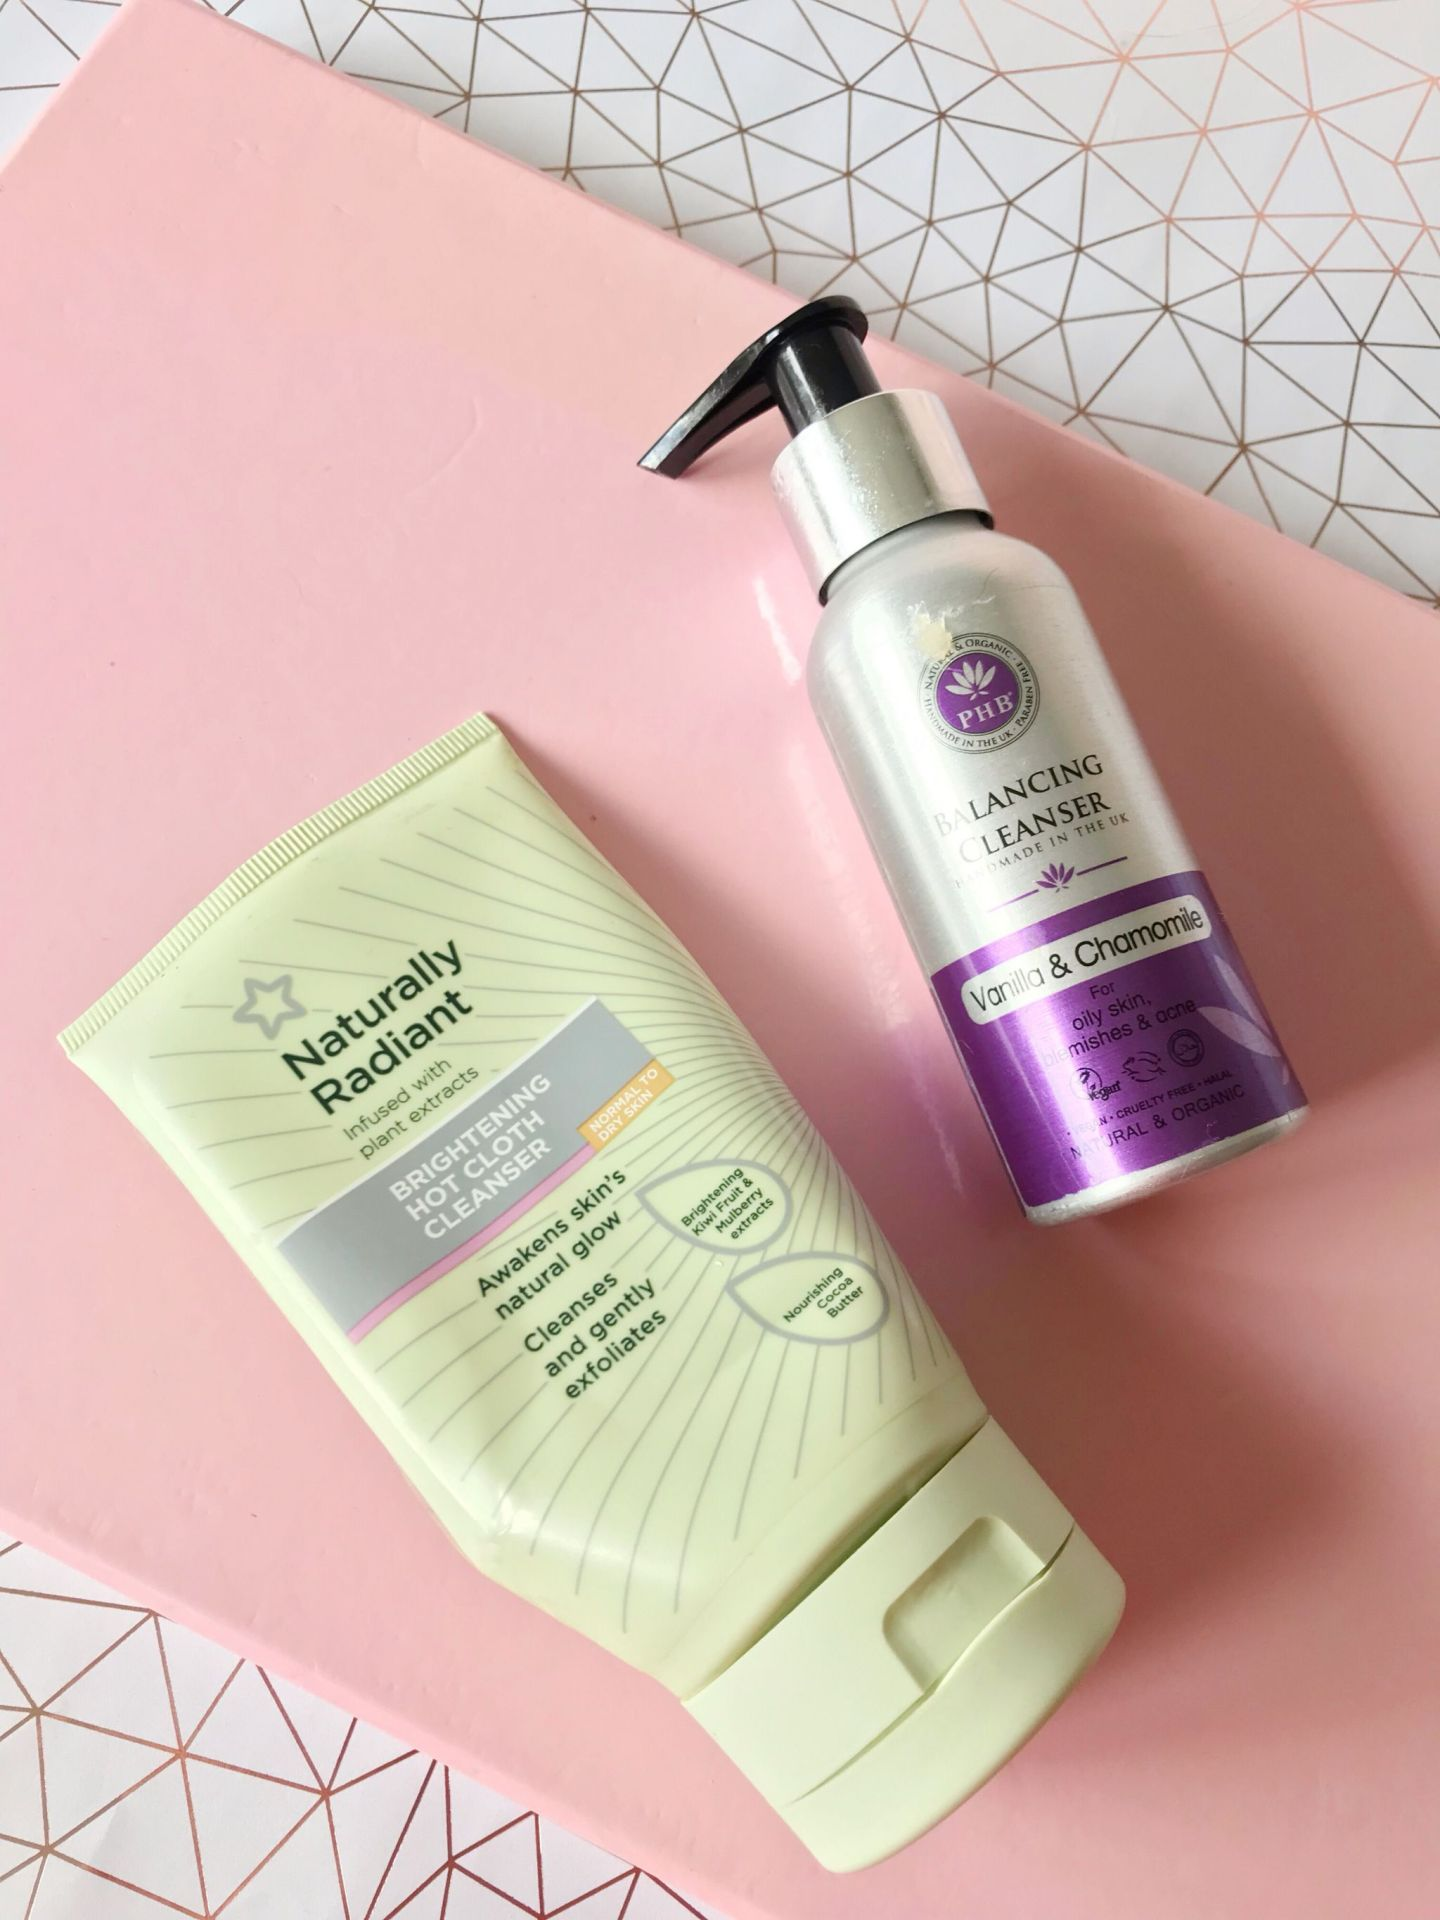 Superdrug Naturally Radiant hot cloth cleanser and PHB balancing cleanser